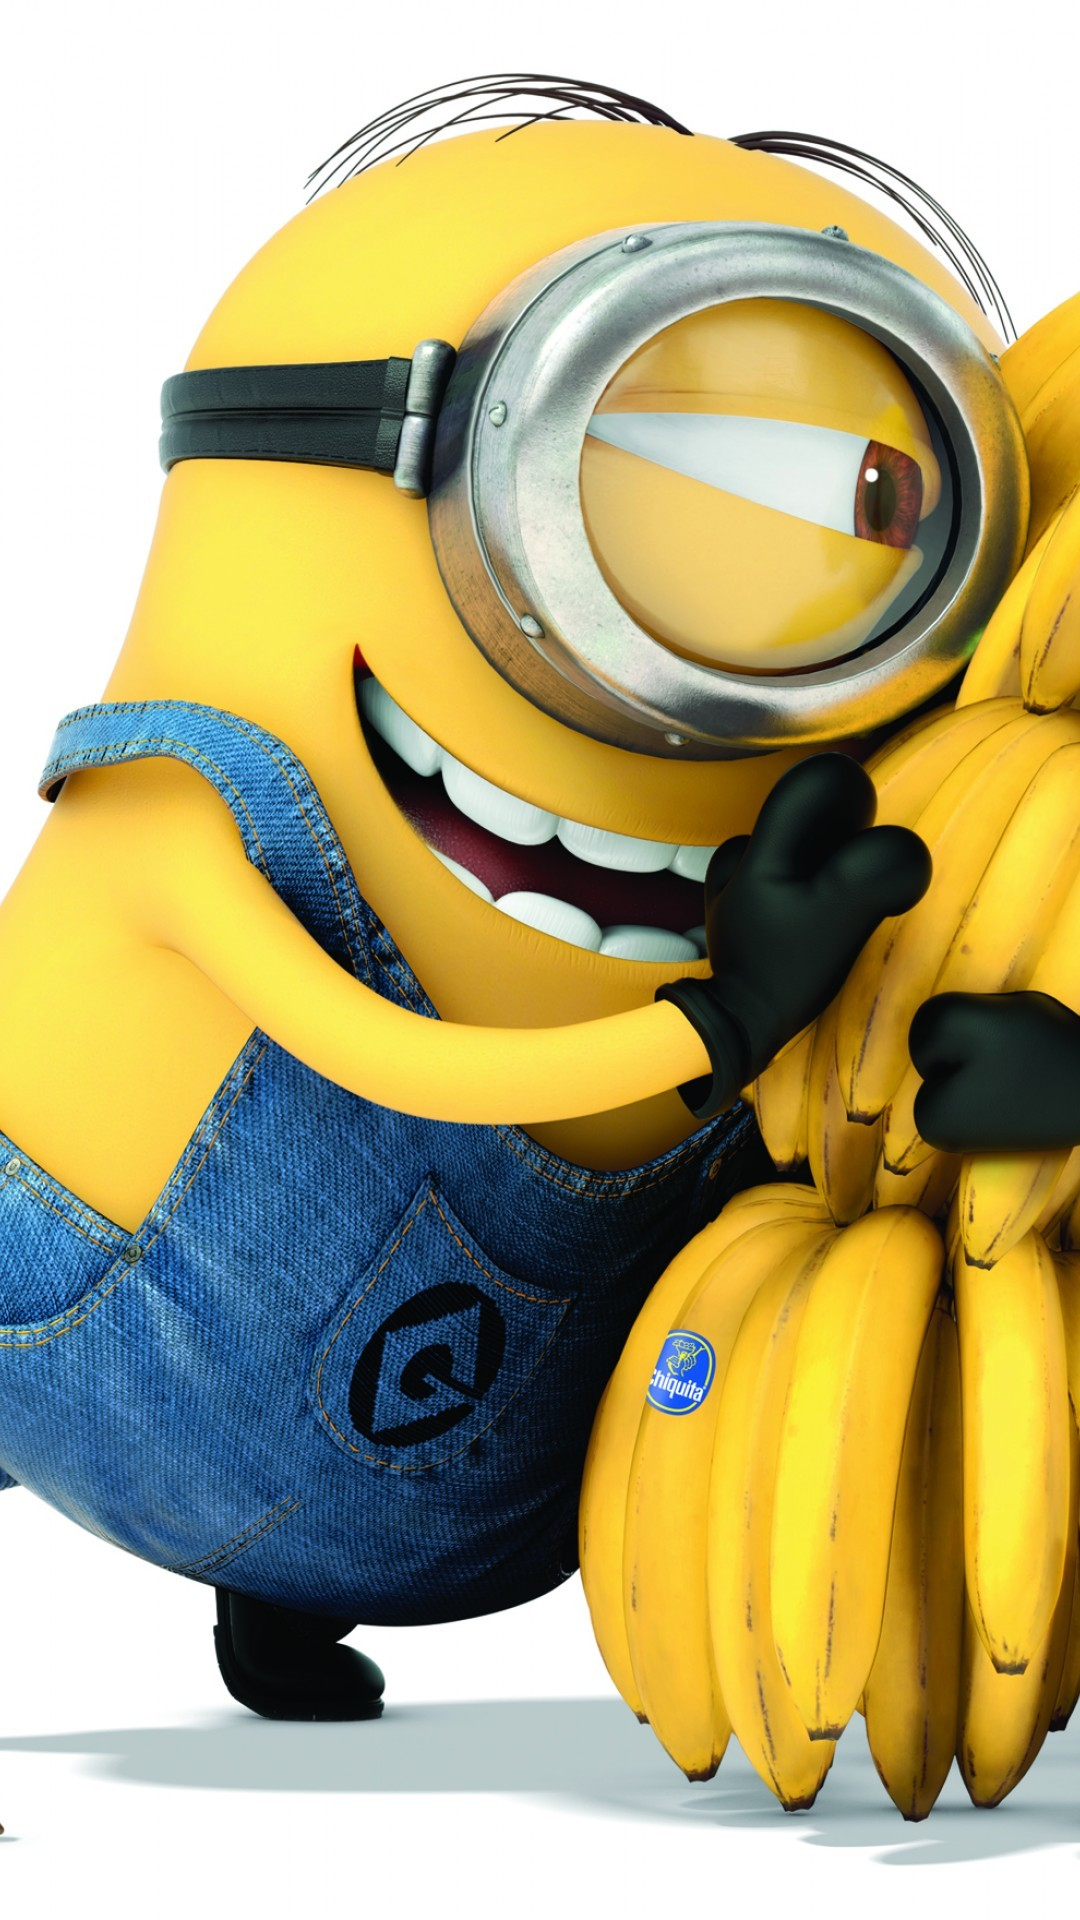 Cute Minions Wallpaper Hd For Android Minion Iphone Wallpaper Hd 83 Images